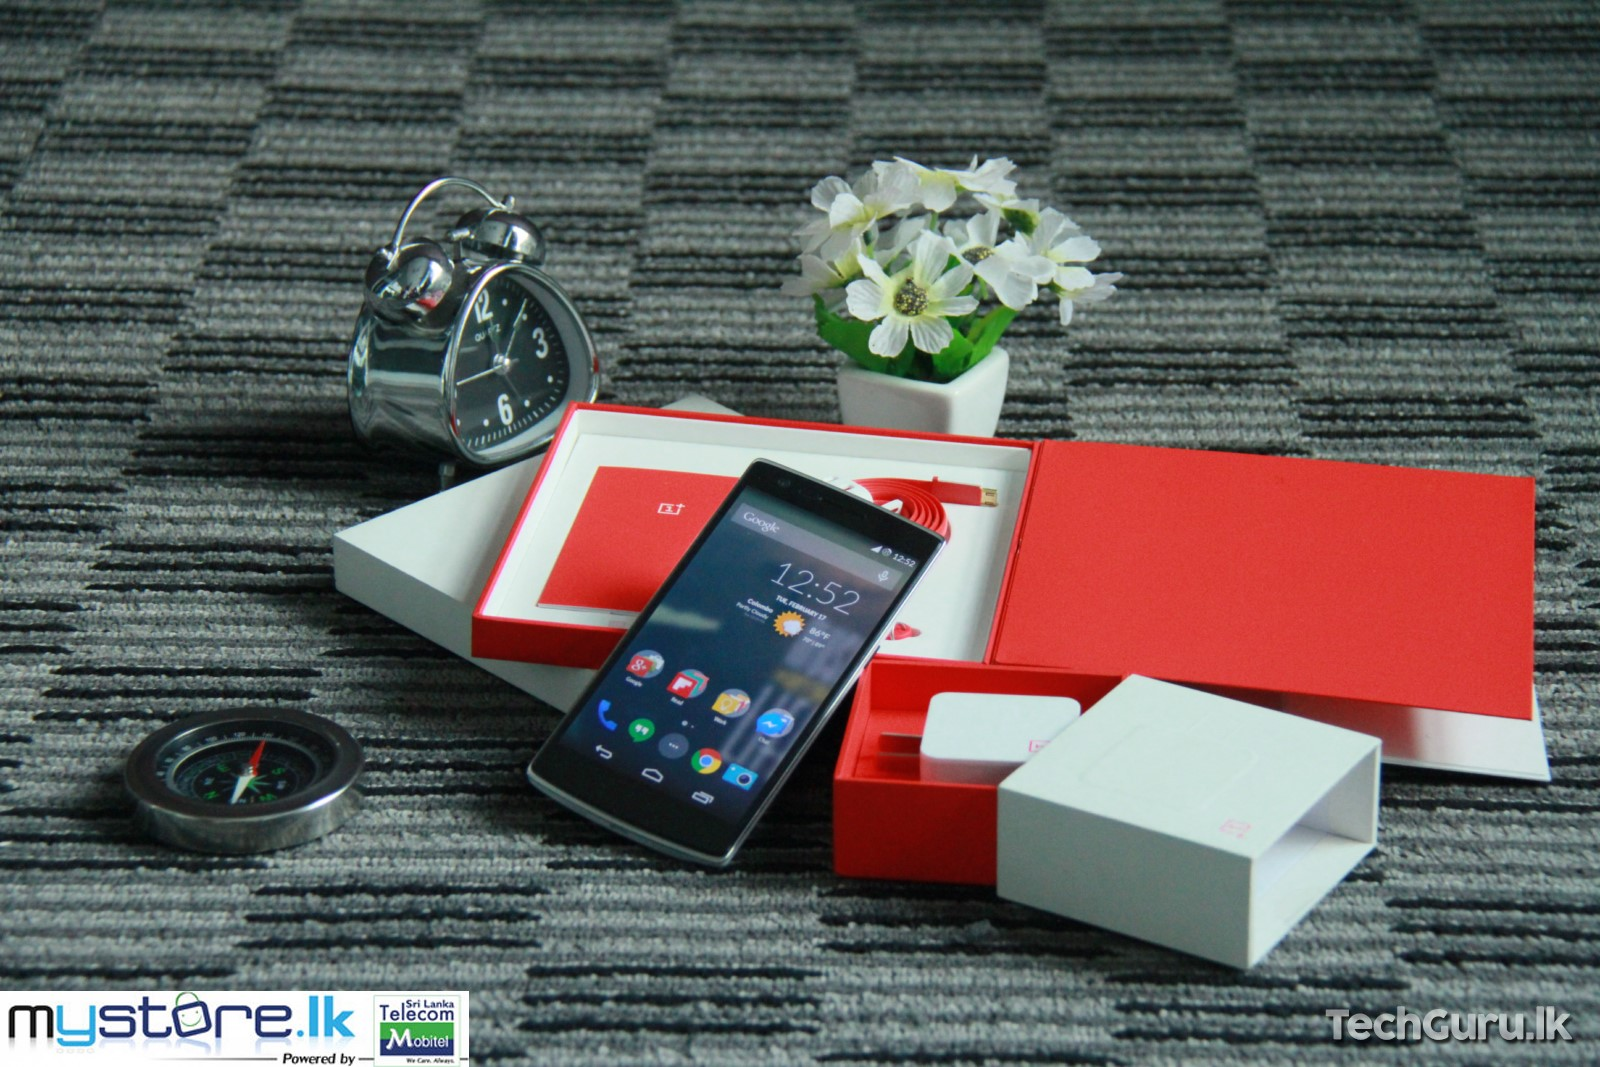 oneplus-one-review-sinhala-techguru-3